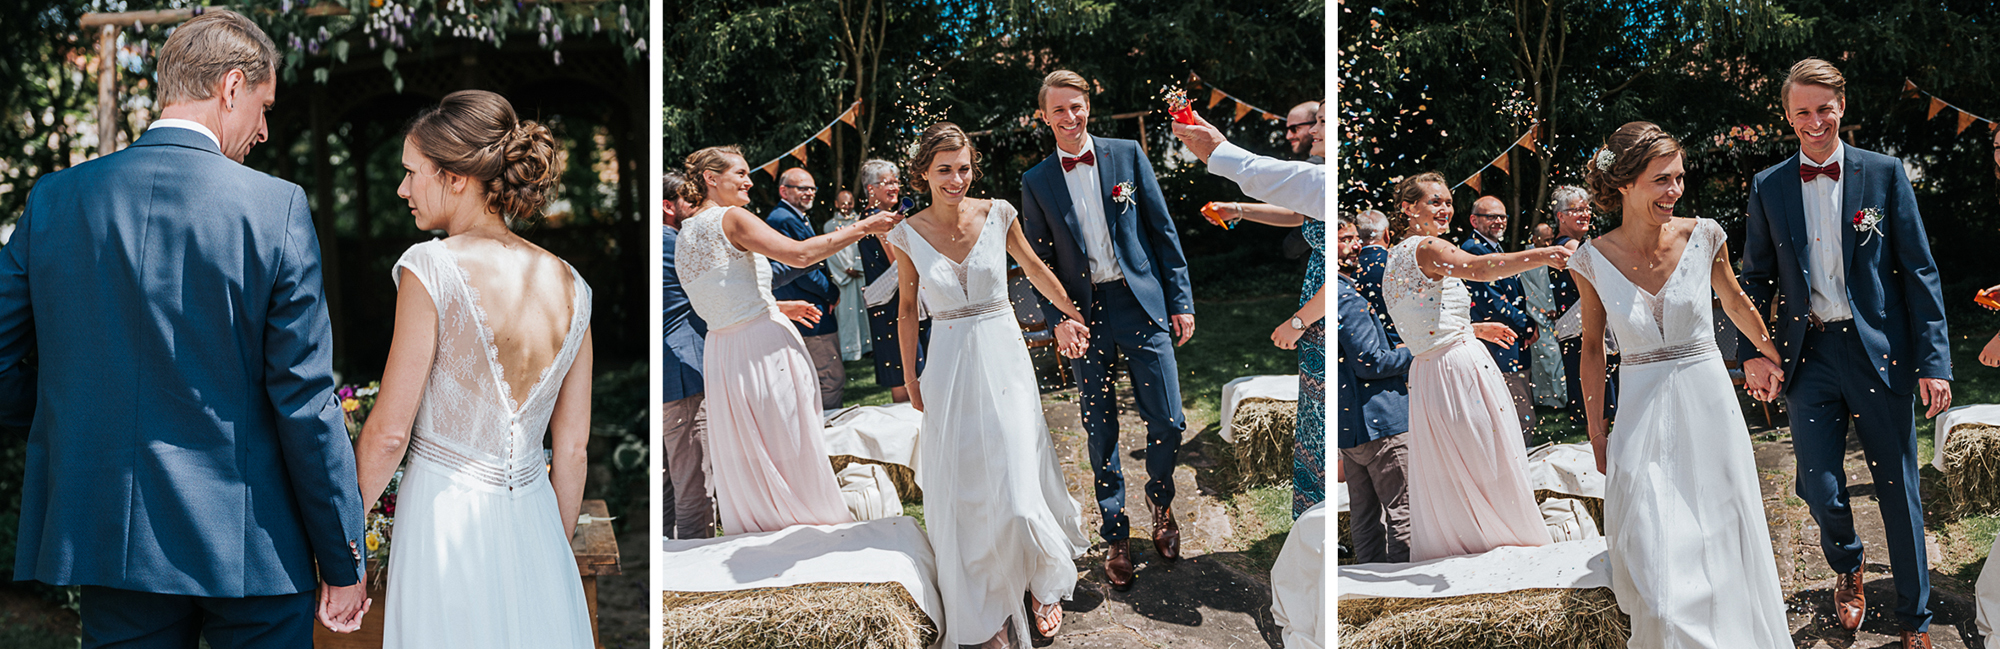 Boho Wedding Theresa Meyer - Fotografie